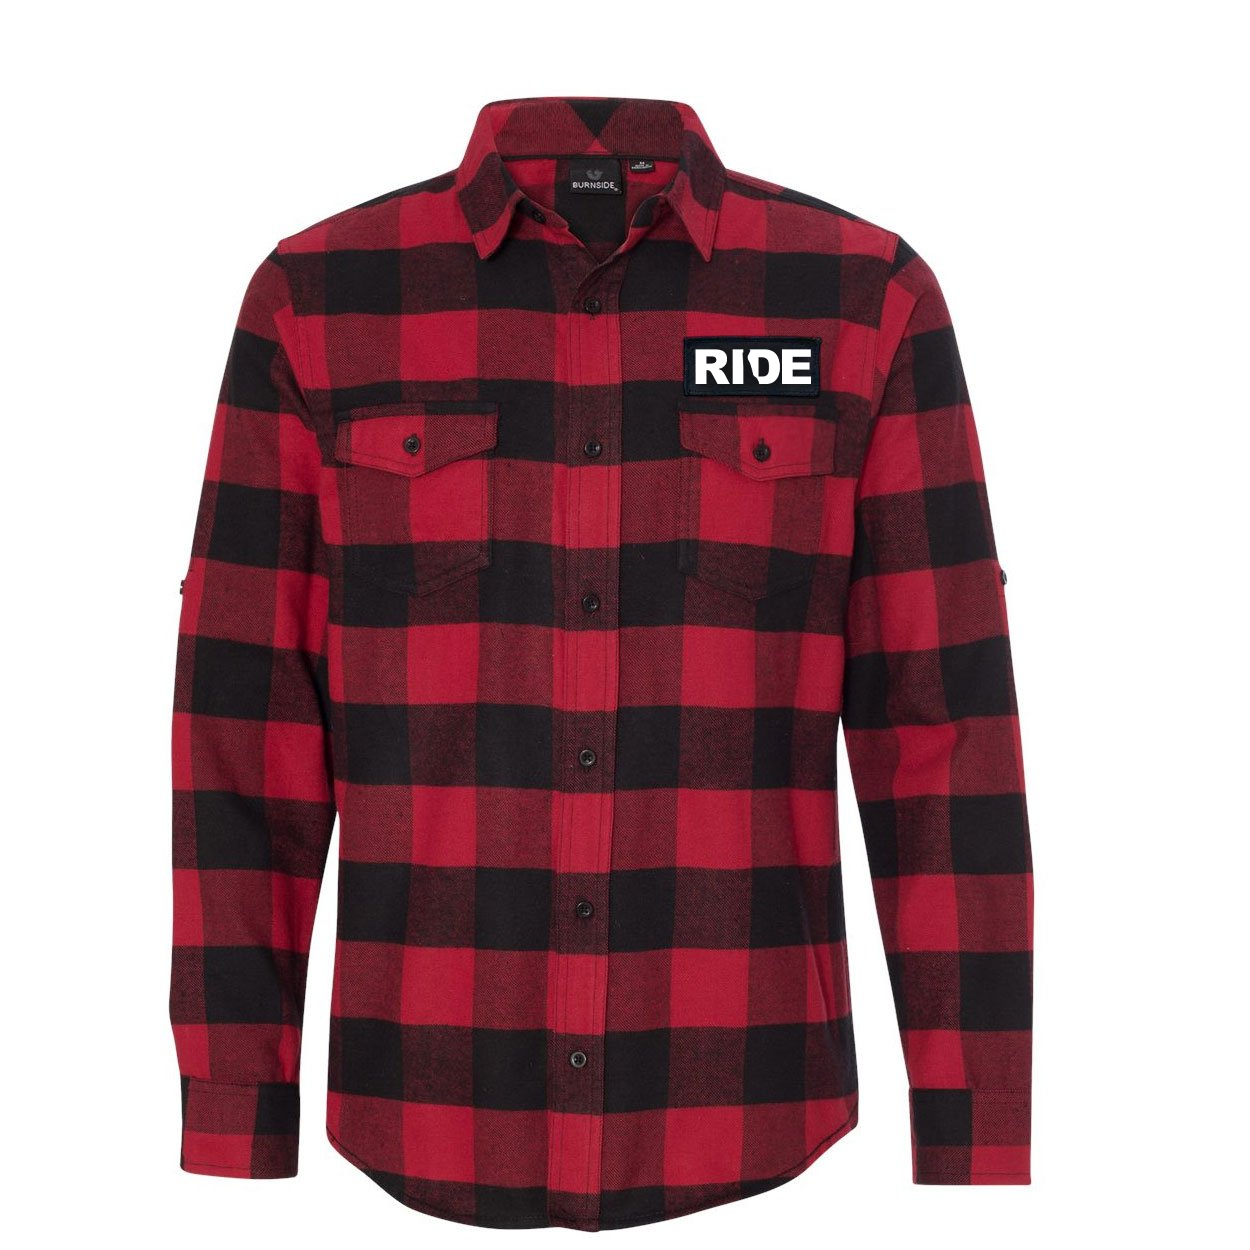 Ride Delaware Classic Unisex Long Sleeve Woven Patch Flannel Shirt Red/Black Buffalo (White Logo)